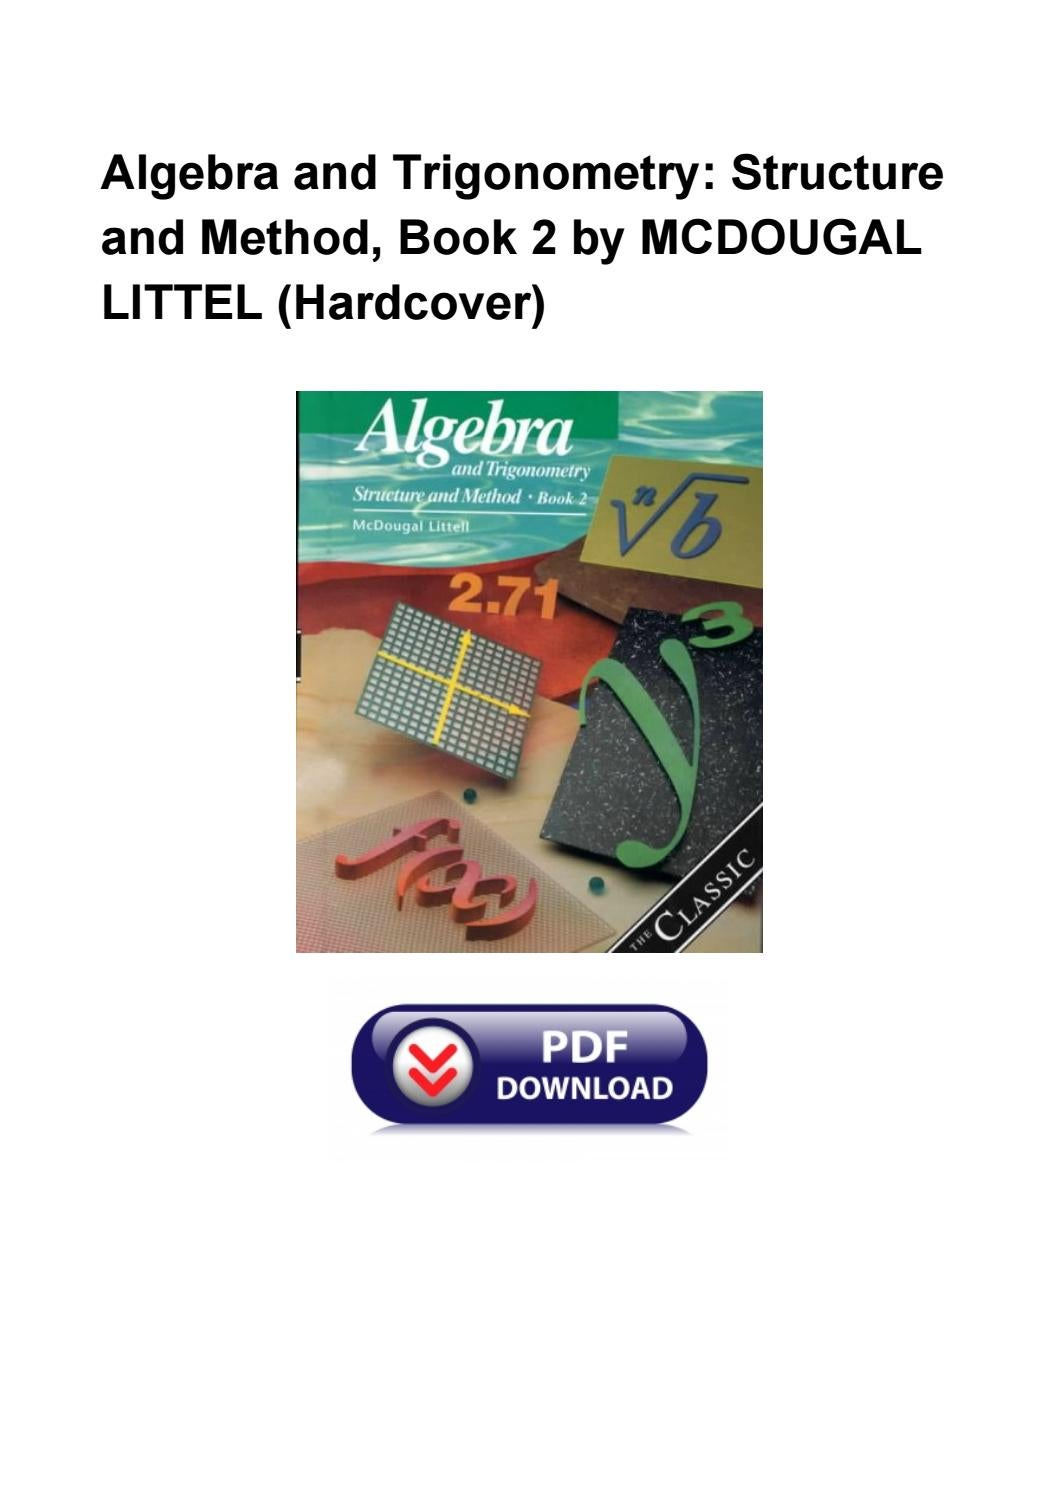 Algebra And Trigonometry Structure And Method Book 2 By Mcdougal Littel Hardcover By Dorothywarker Issuu